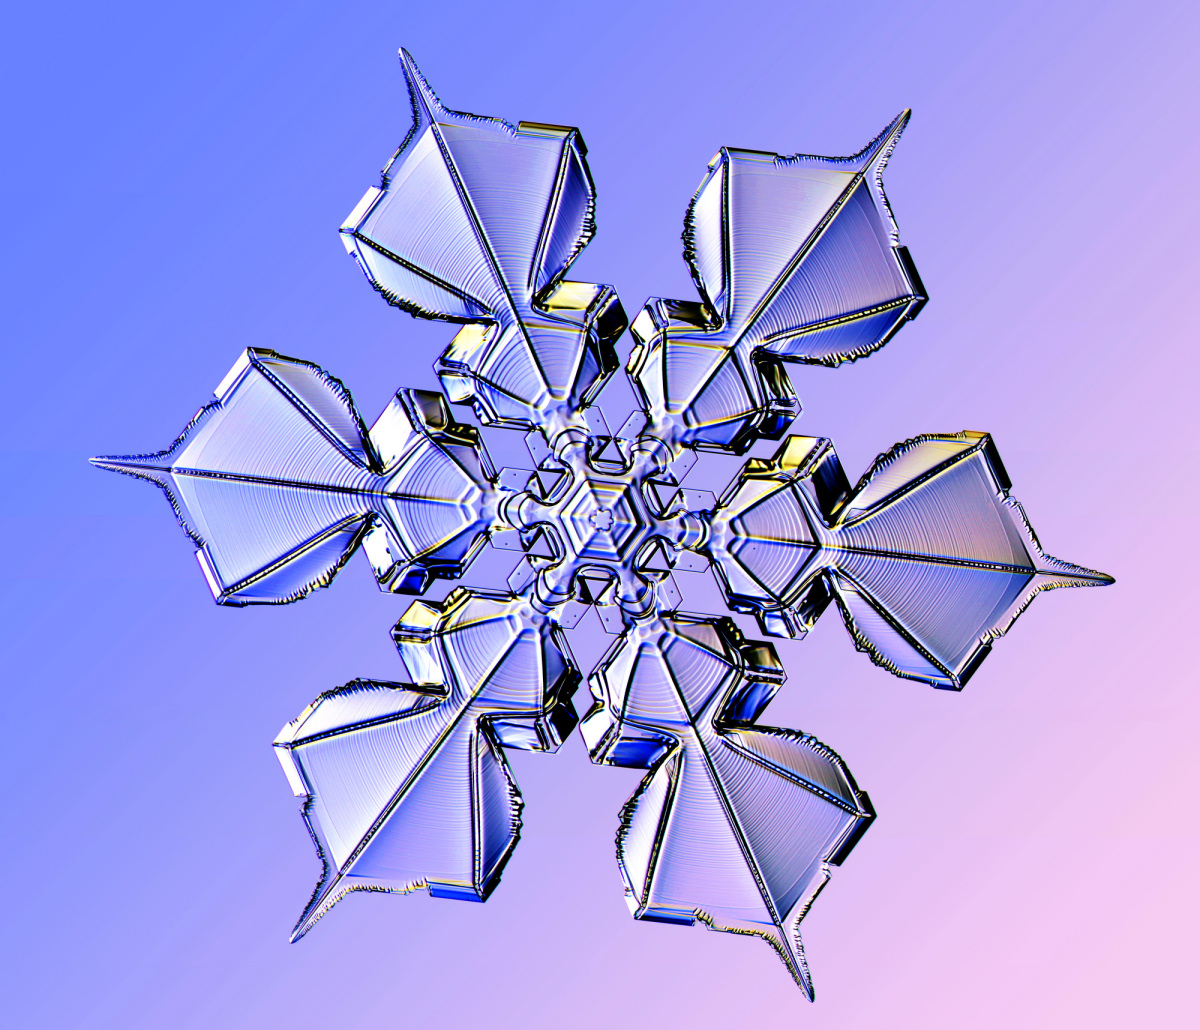 Pictures Of Snowflakes